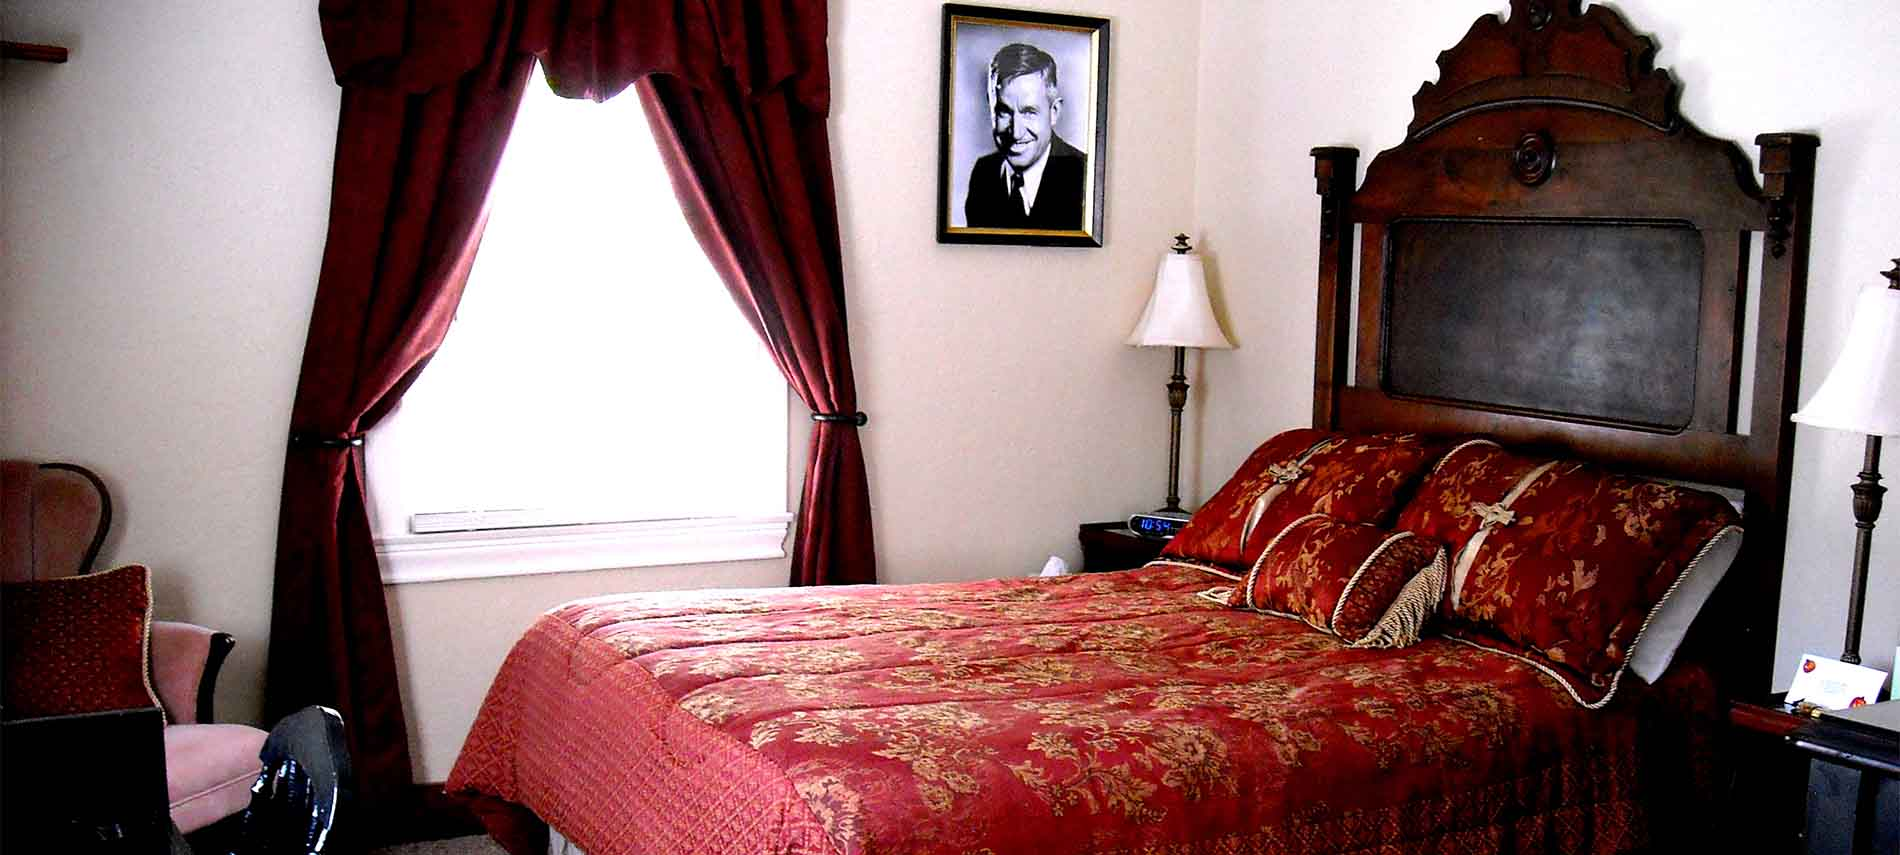 Bedroom with highback bed covered in red comforter with gold accents. Photo of Will Rogers on the wall